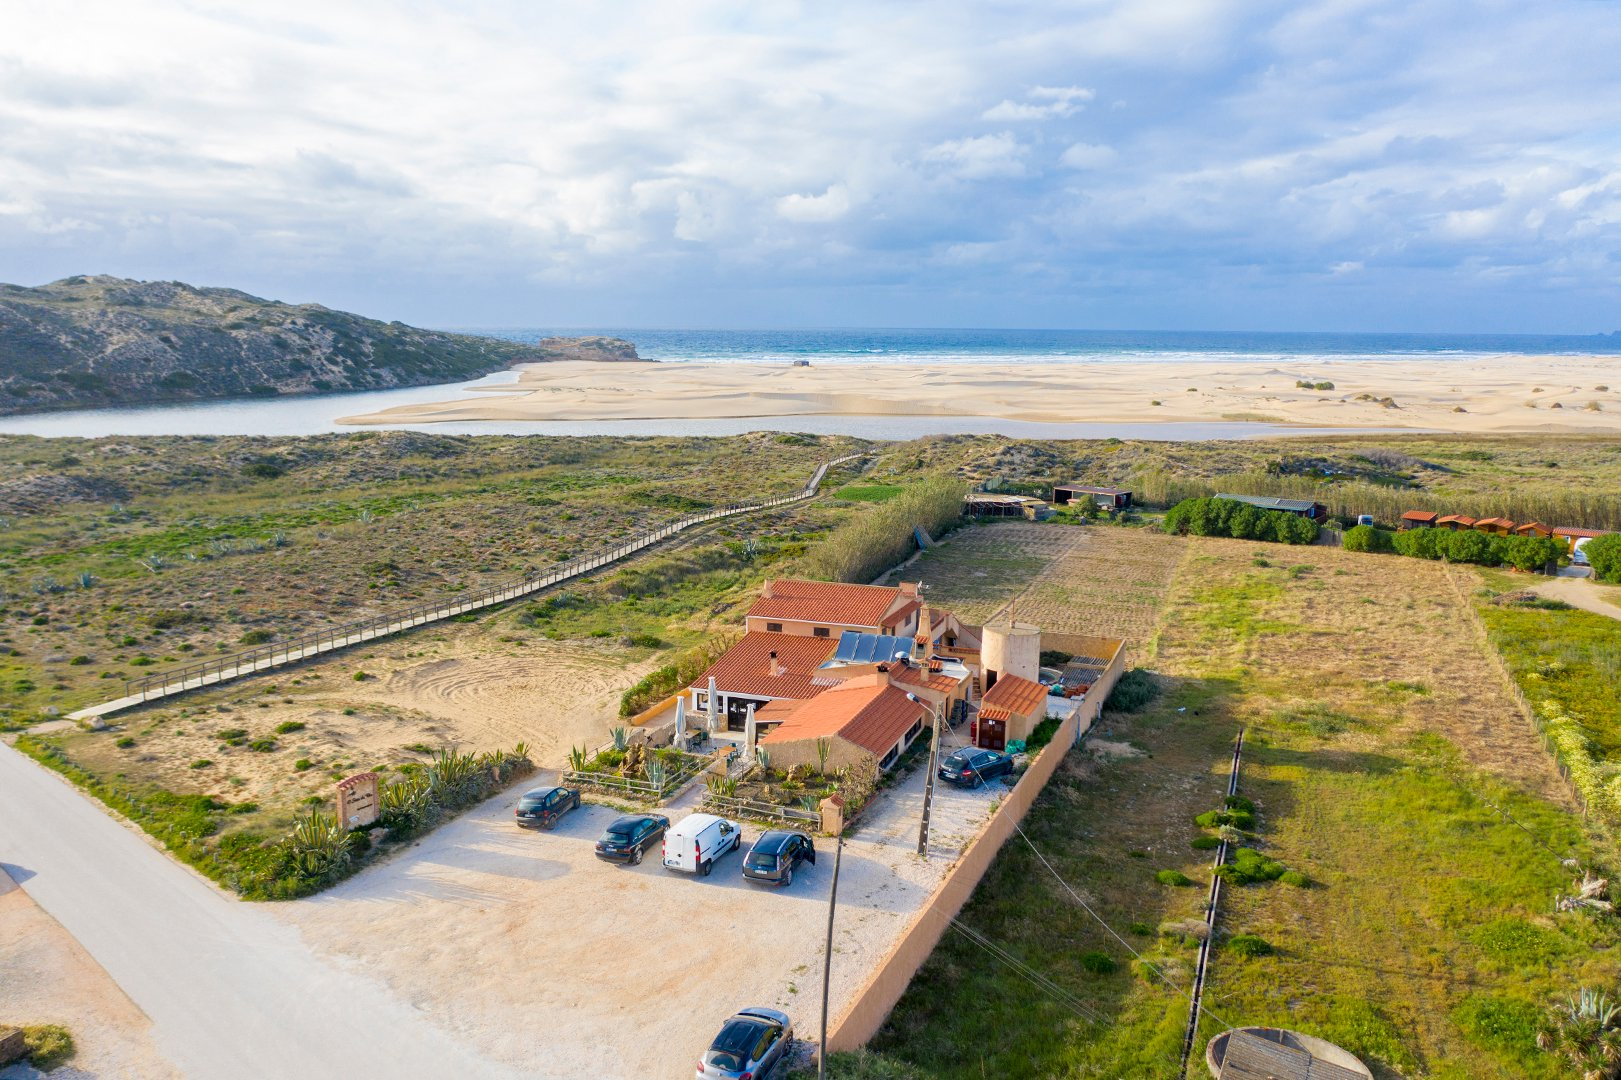 Carrapateira, Faro District, Portugal 1